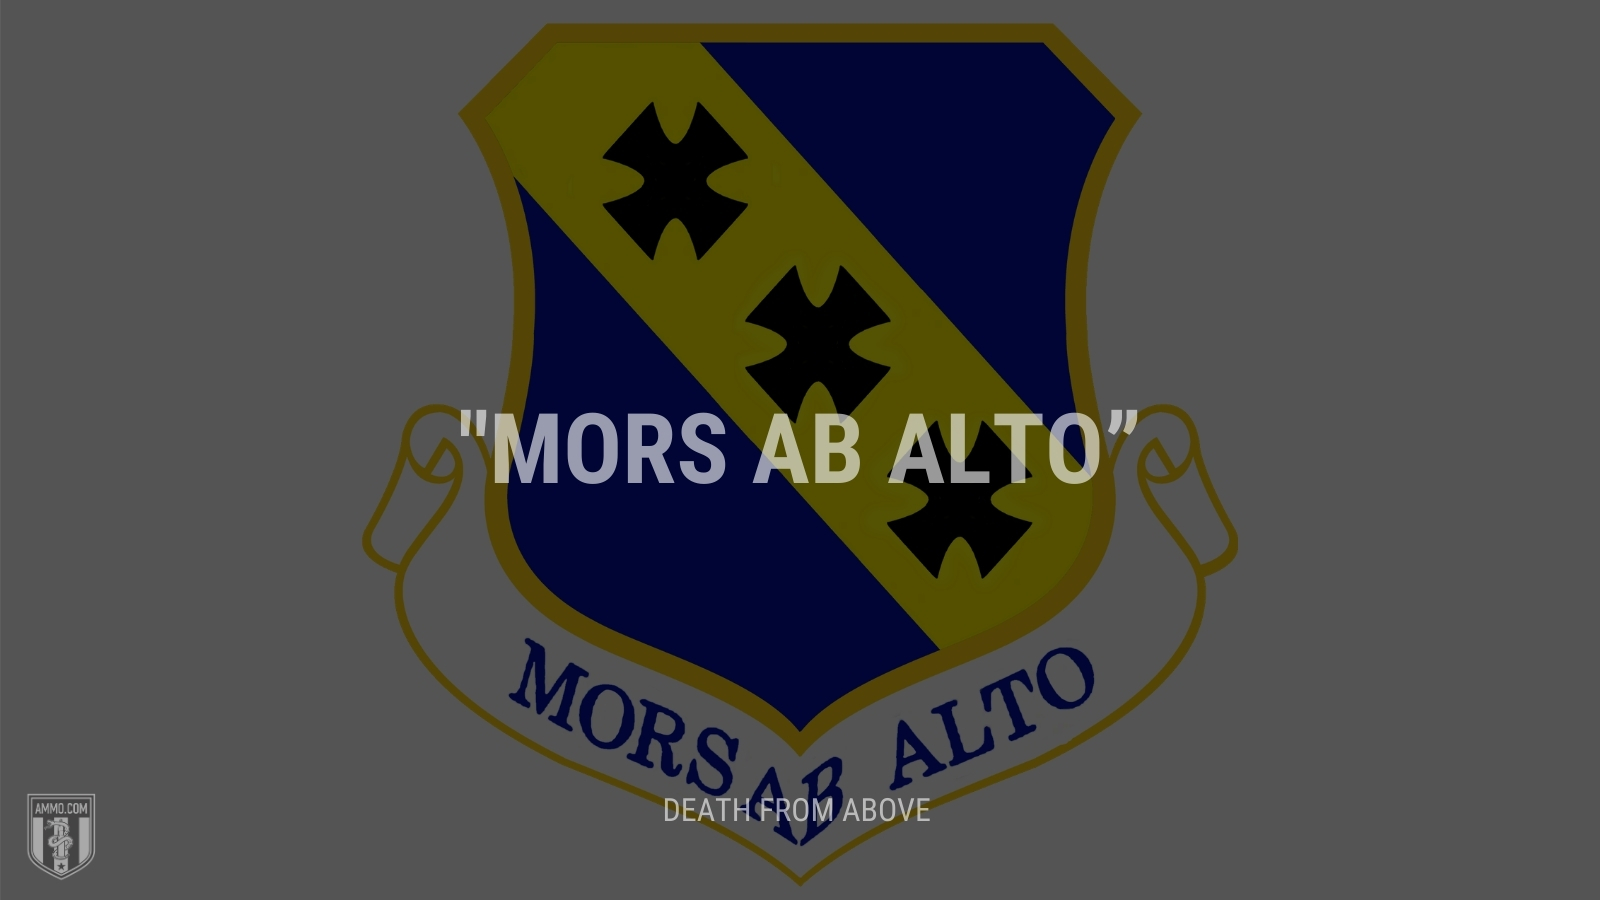 """""""Mors ab alto"""" - Death from above"""